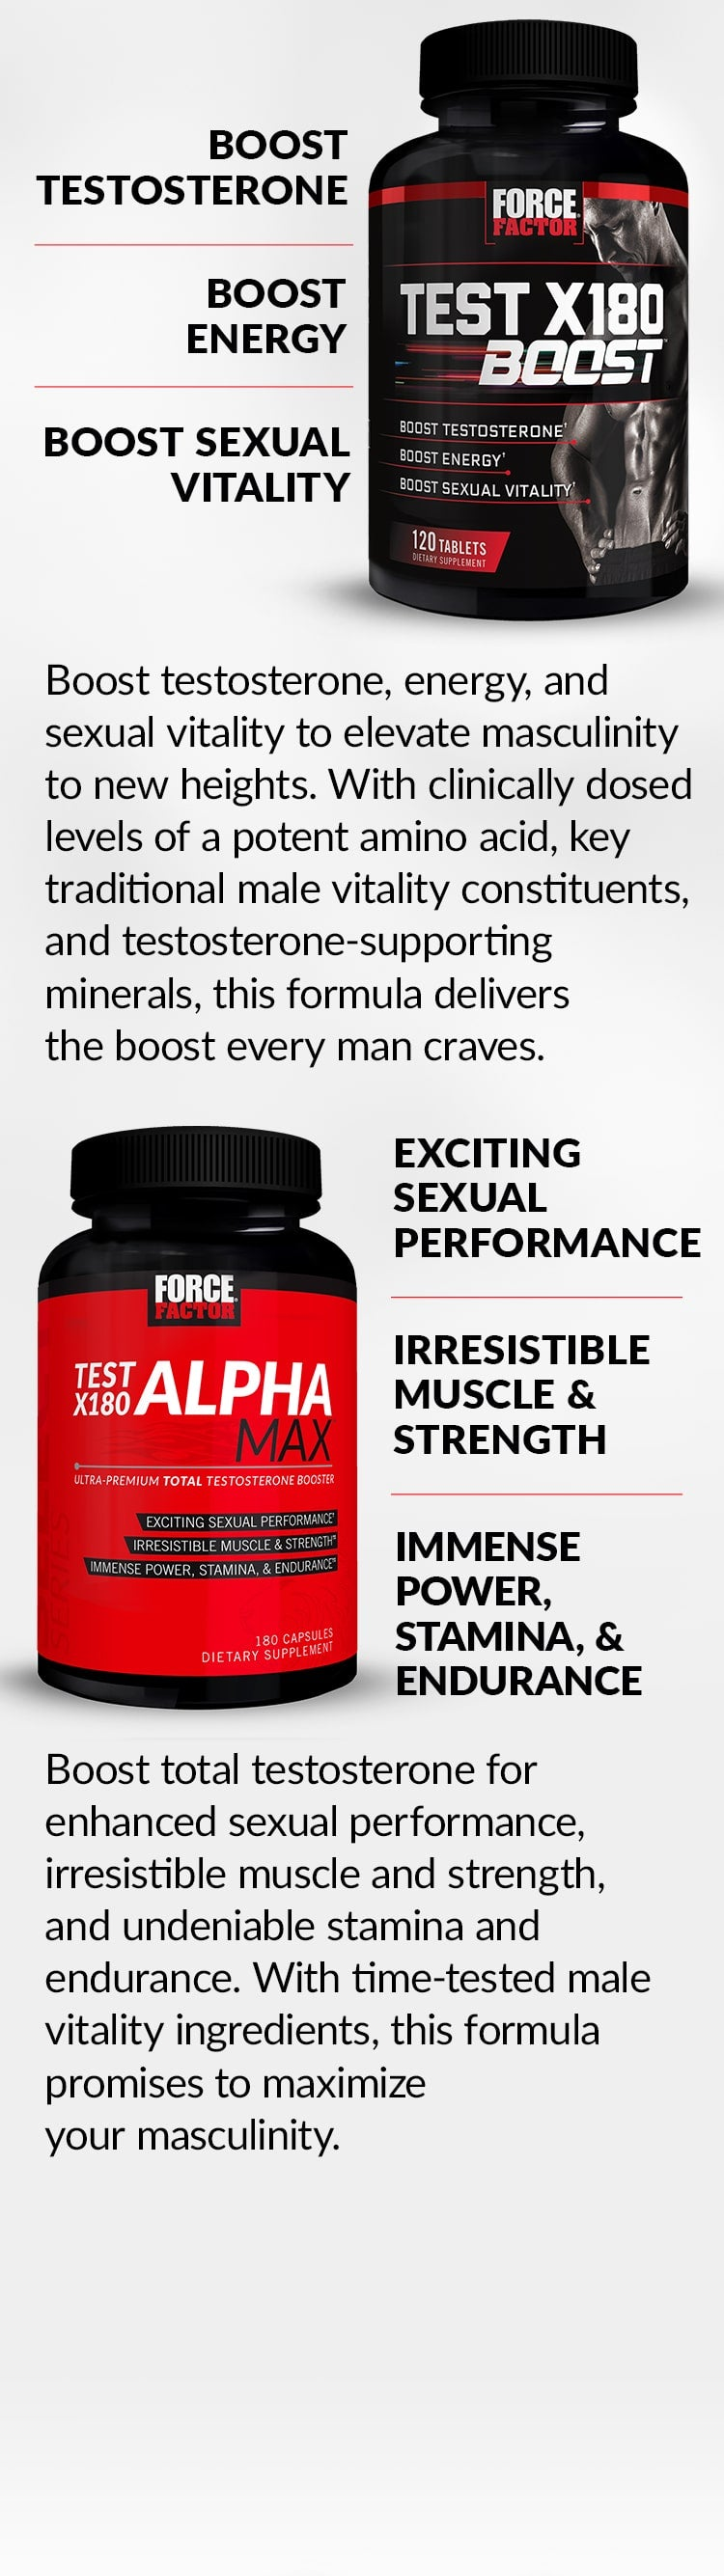 Test X180 Boost® - Boost Testosterone, Boost Energy, Boost Sexual Vitality. Boost testosterone, energy, and sexual vitality to elevate masculinity to new heights. With clinically dosed levels of a potent amino acid, key traditional male vitality constituents, and testosterone-supporting minerals, this formula delivers the boost every man craves. Test X180 Alpha Max® - Exciting Sexual Performance, Irresistible Muscle & Strength, Immense Power, Stamina, & Endurance. Boost total testosterone for enhanced sexual performance, irresistible muscle and strength, and undeniable stamina and endurance. With time-tested male vitality ingredients, this formula promises to maximize your masculinity.